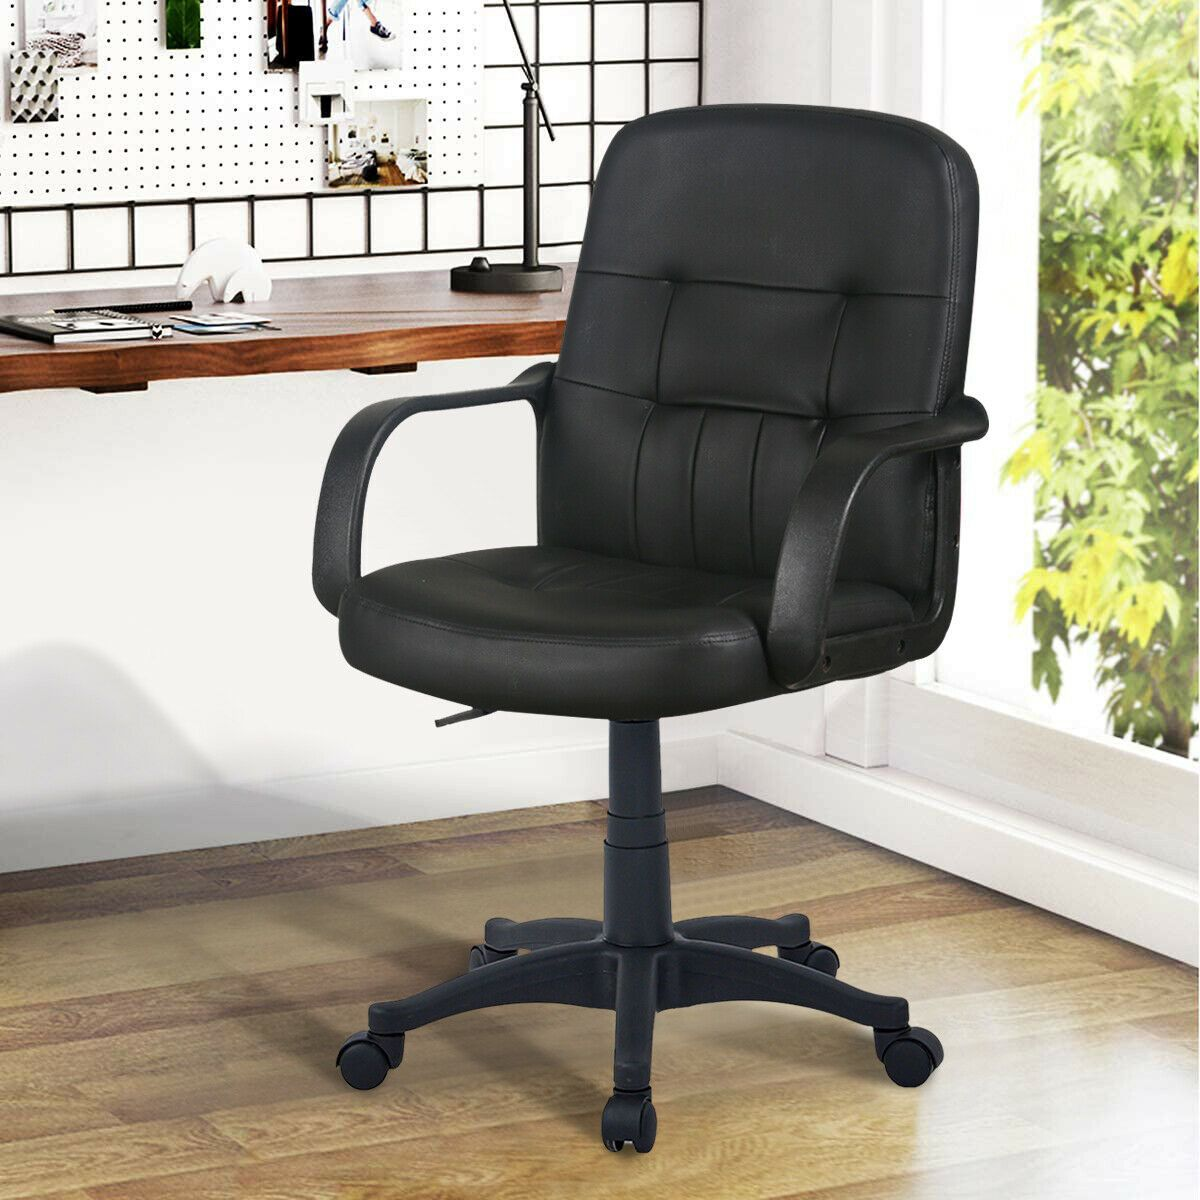 Swivel Desk Chair in 2020 Swivel chair desk, Adjustable